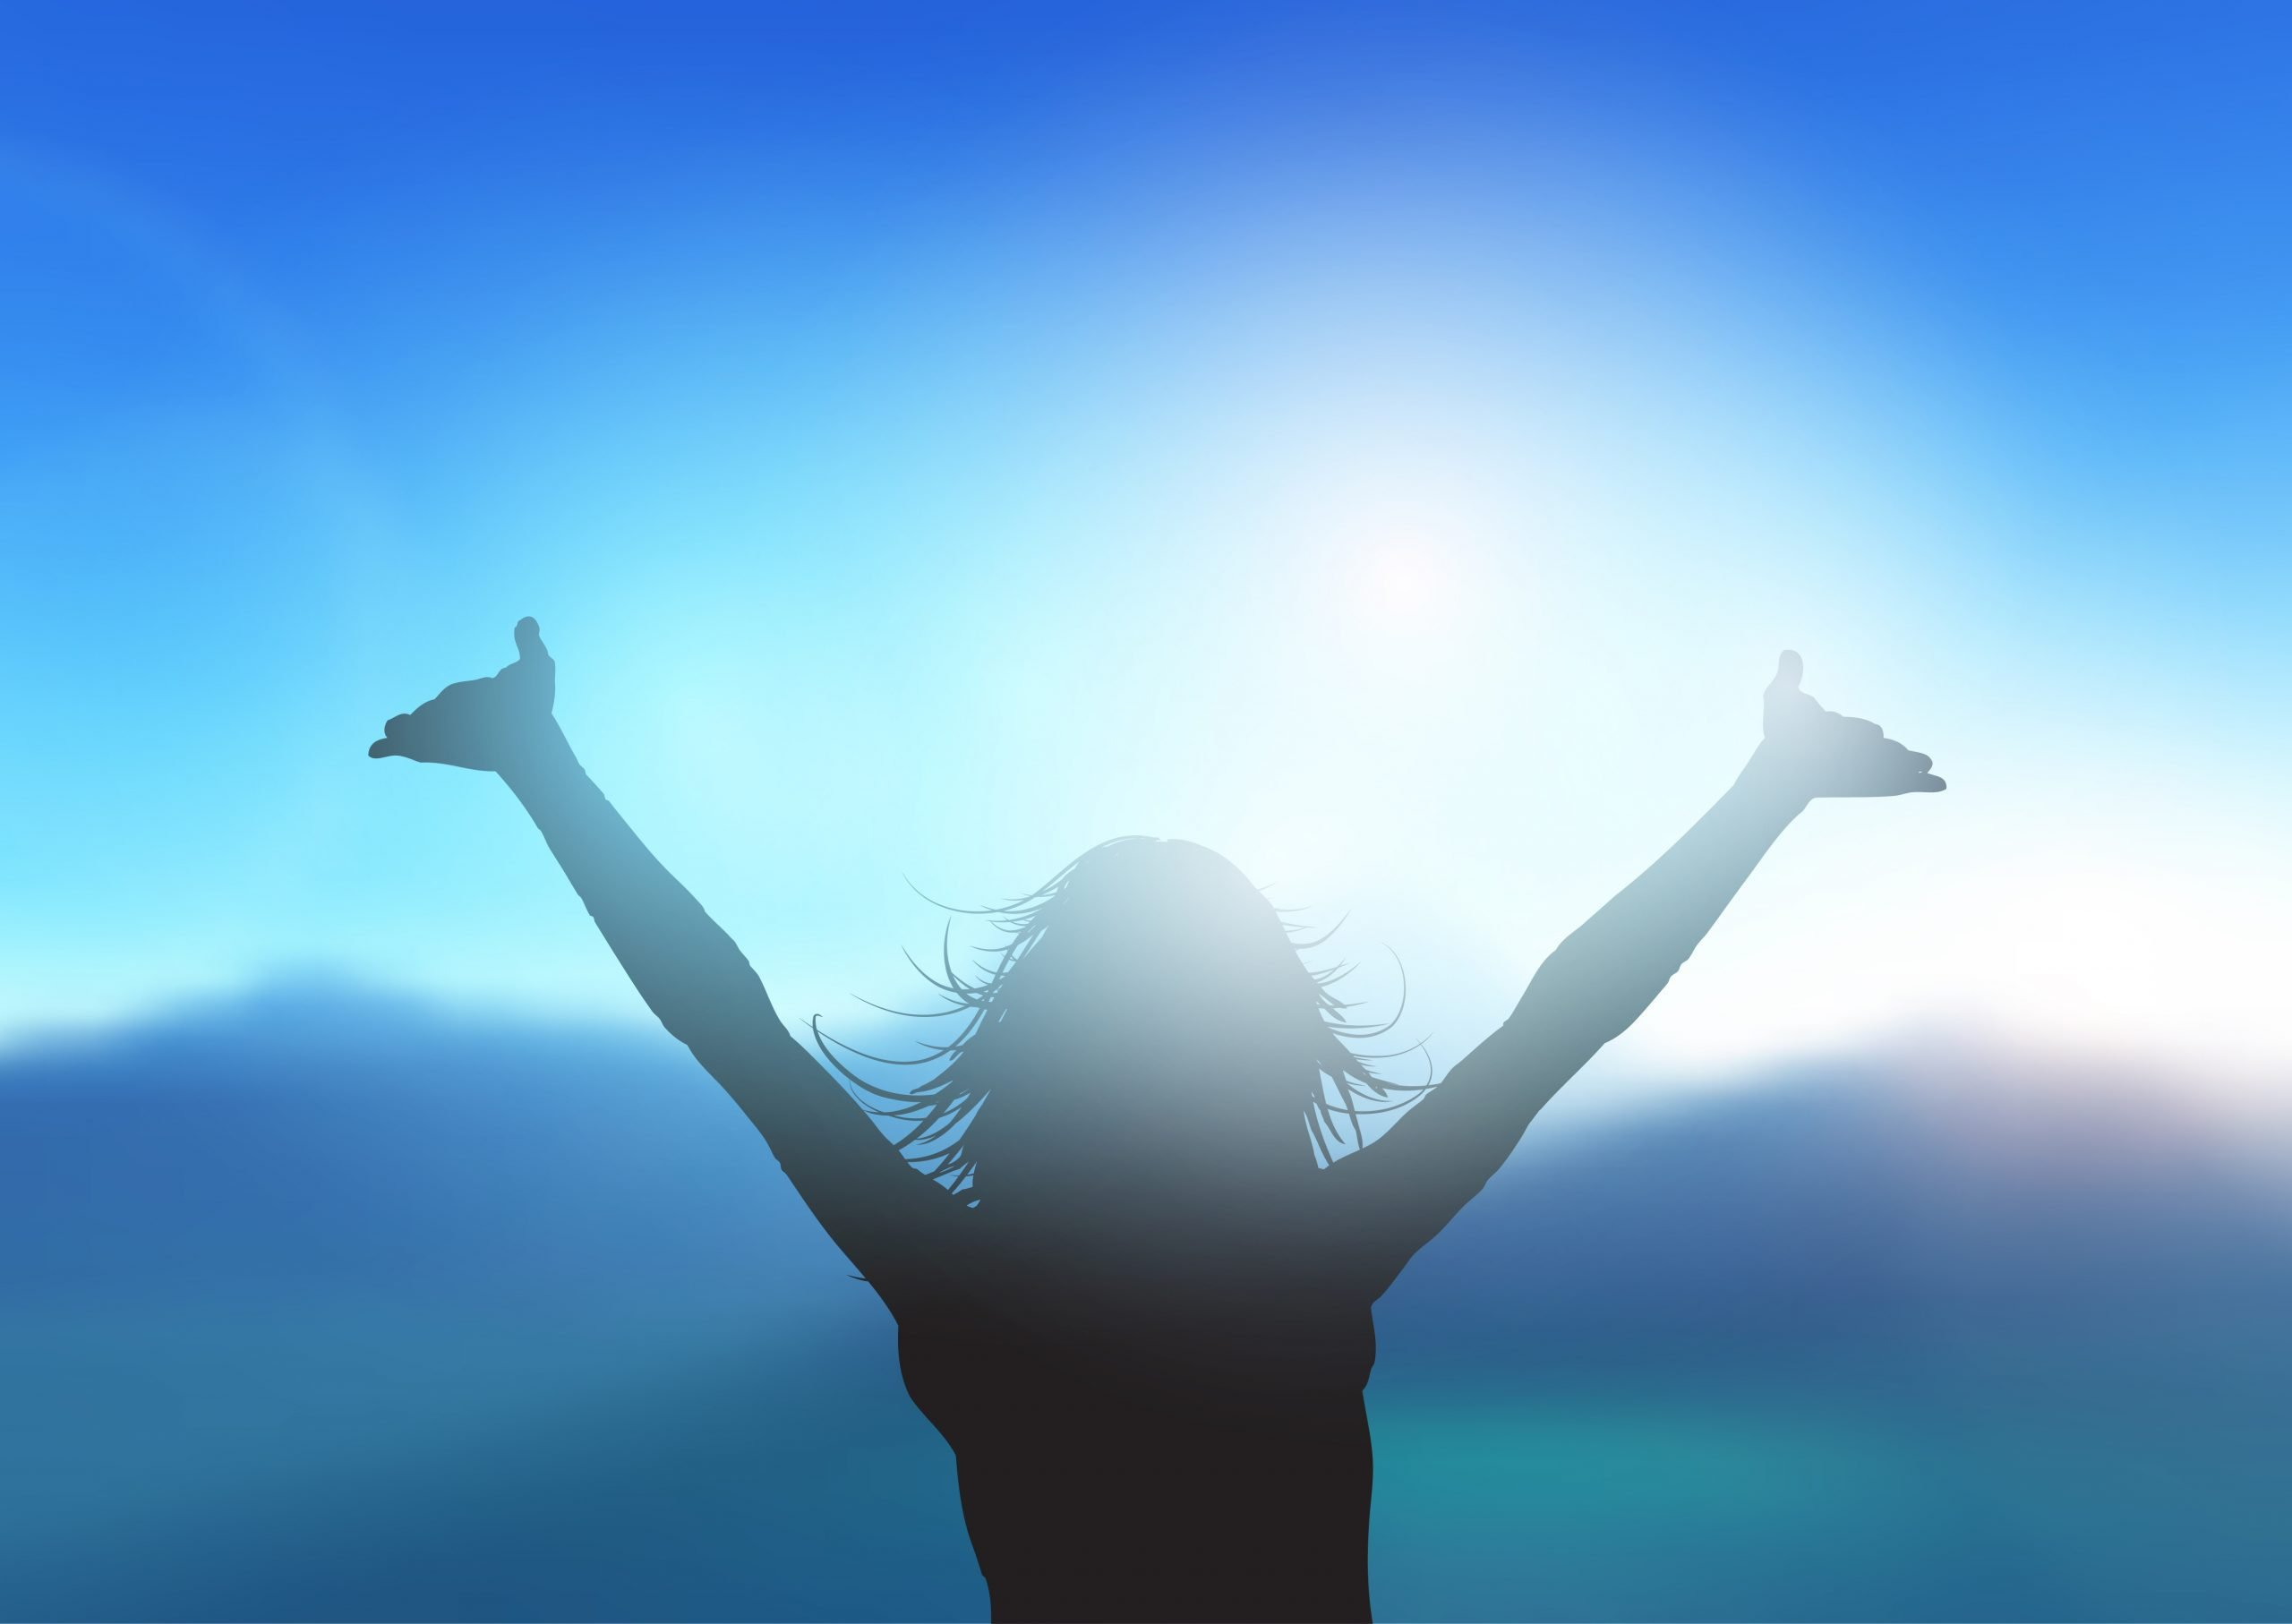 Silhouette of a female with arms raised against mountain landscape